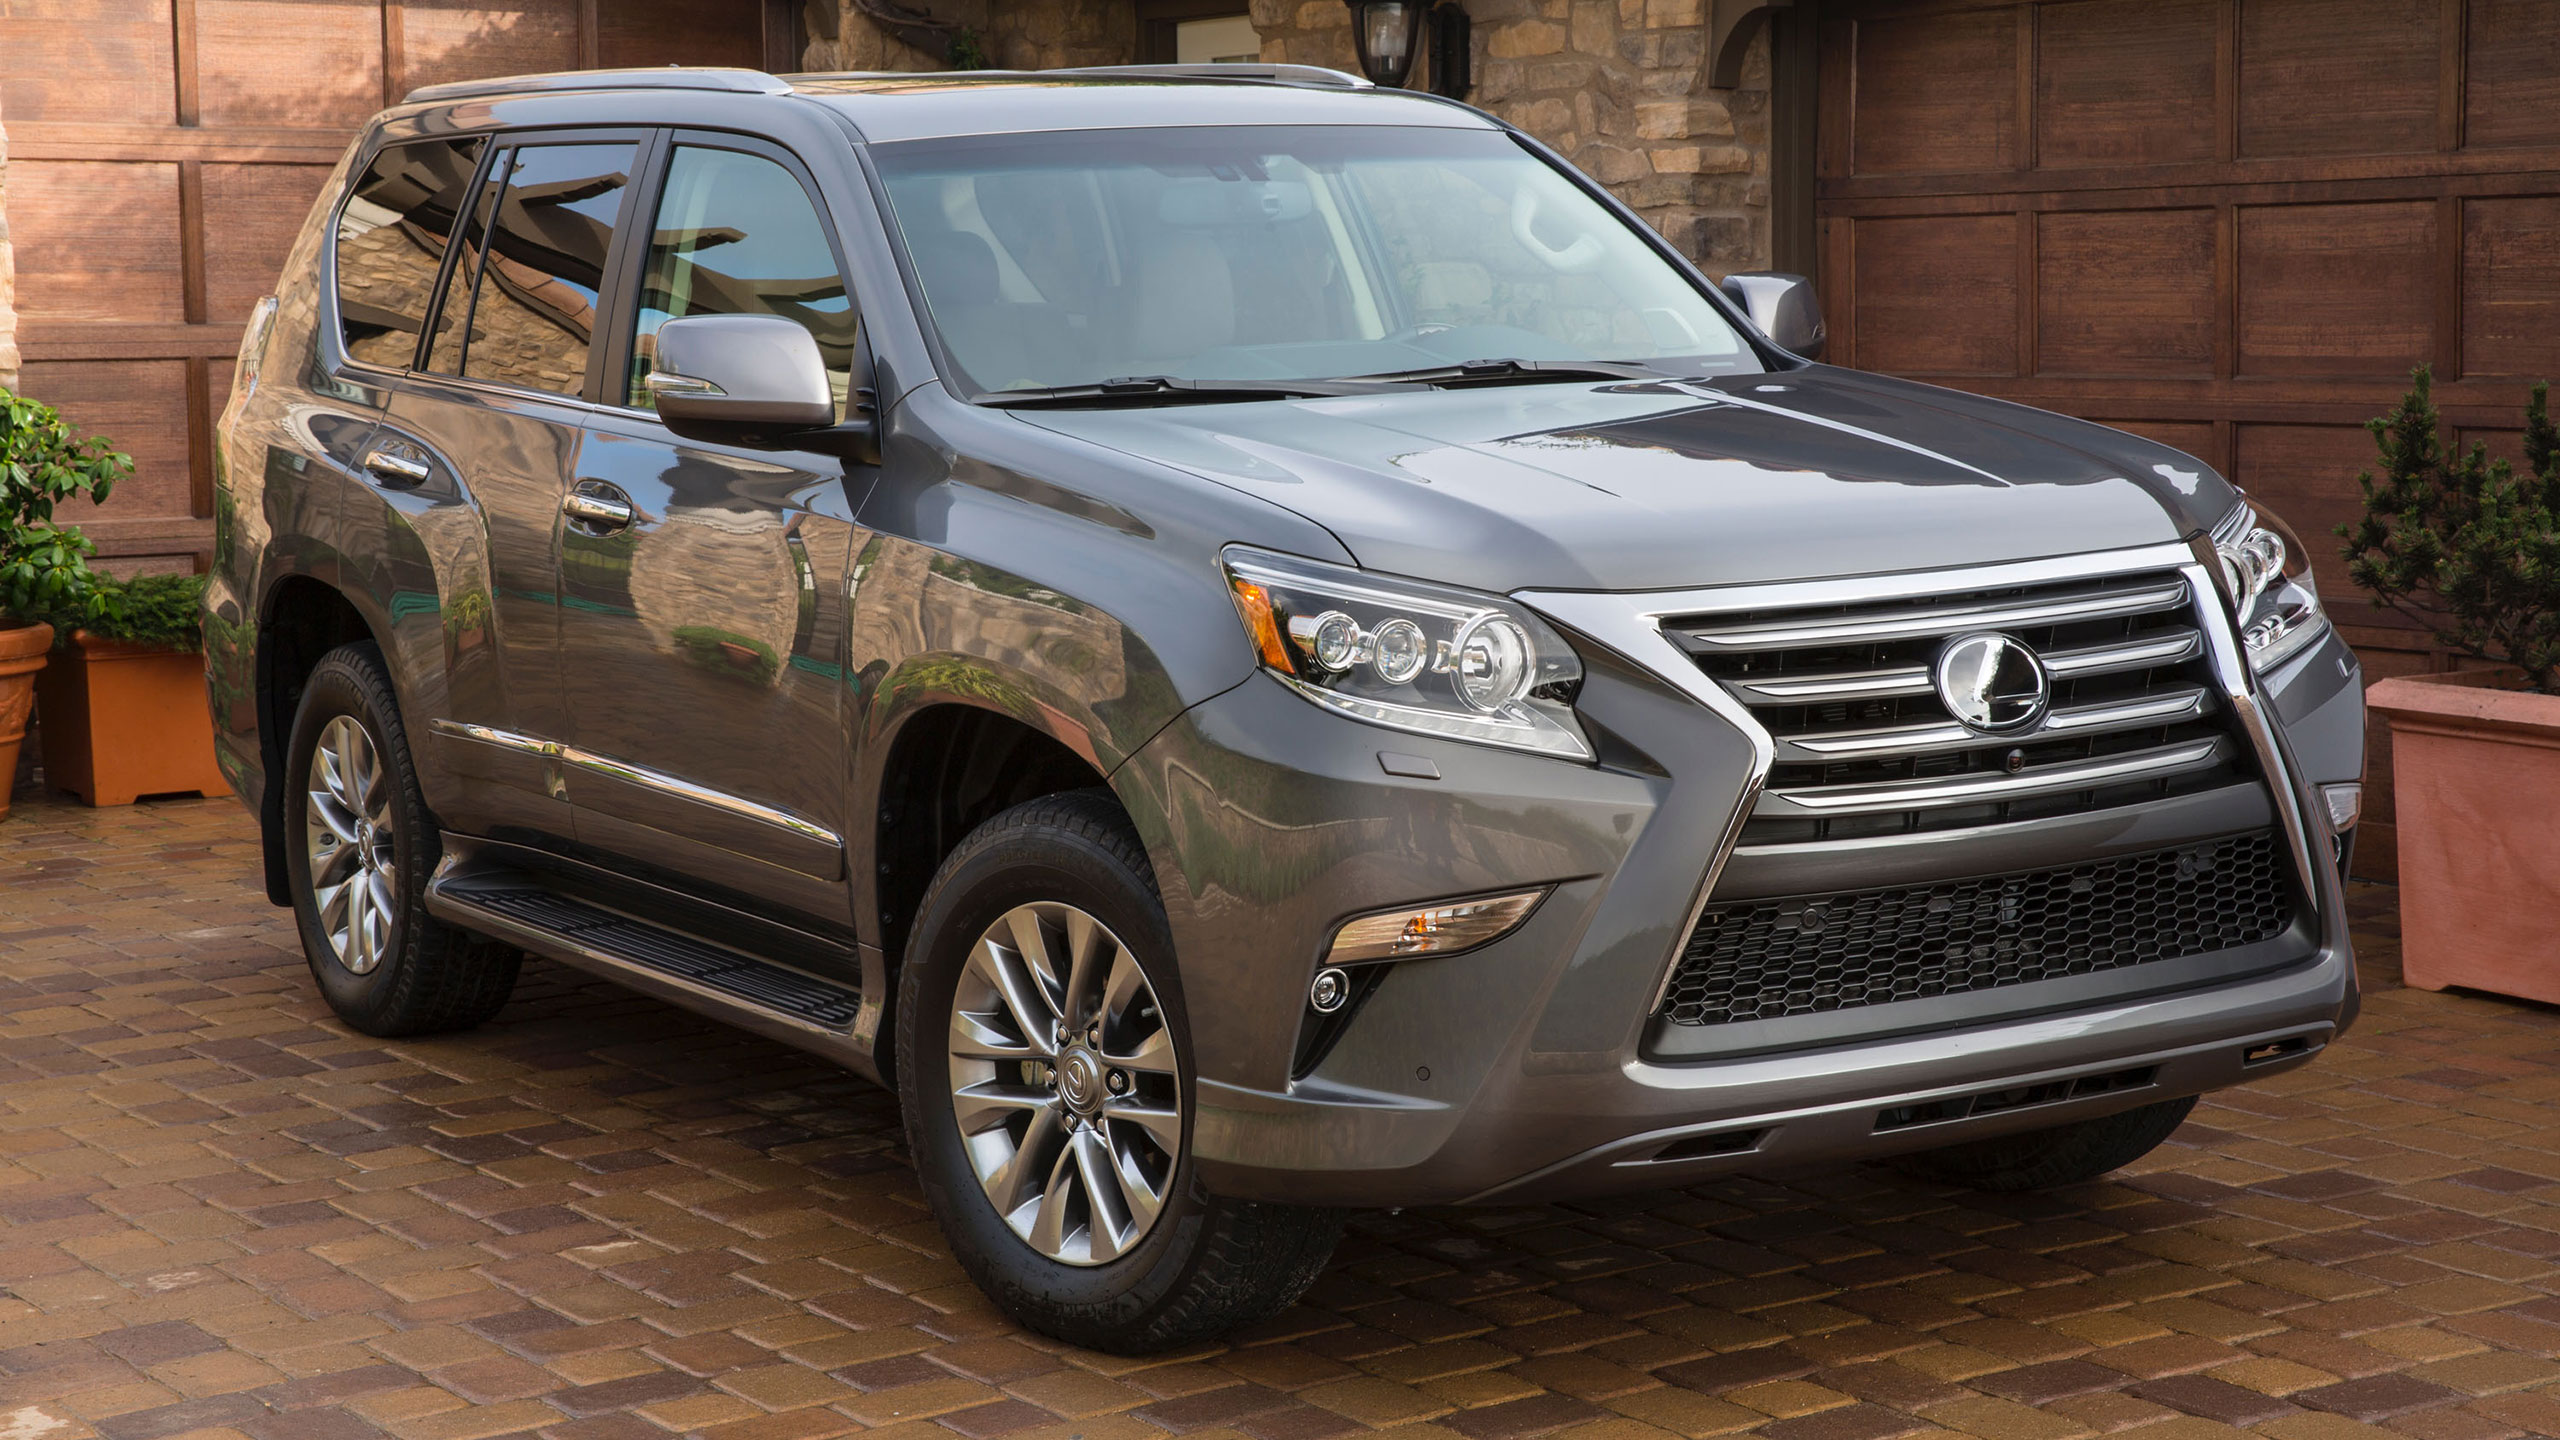 2014 Lexus GX 460 WQHD 169 Wallpaper [2560x1440 wallpaper 77 of 80] 2560x1440